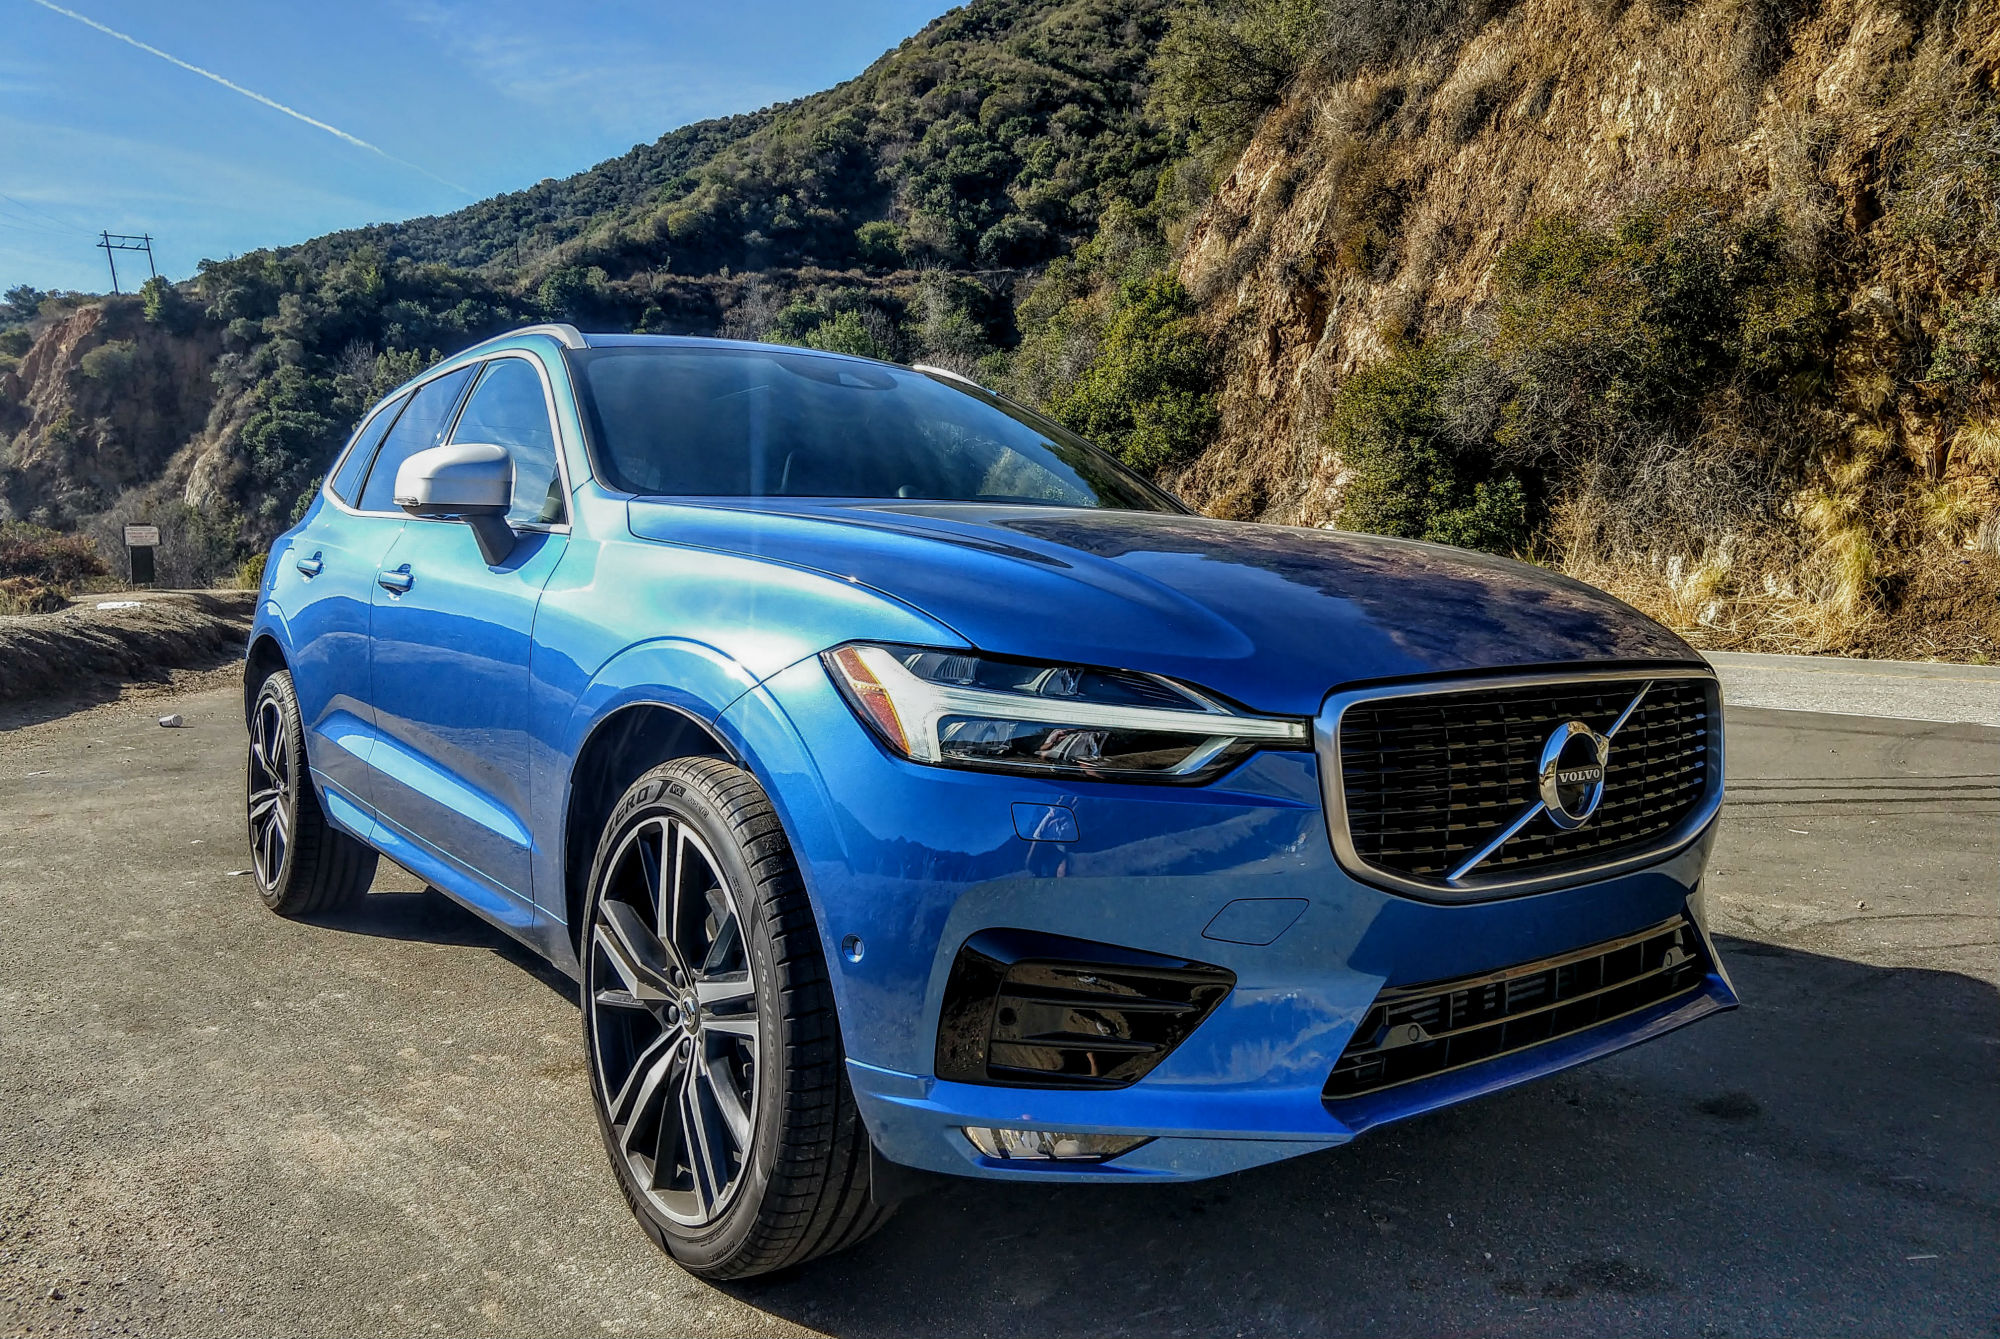 2018 Volvo Xc60 T6 R Design Review Can I Get An Encore The Ignition Blog